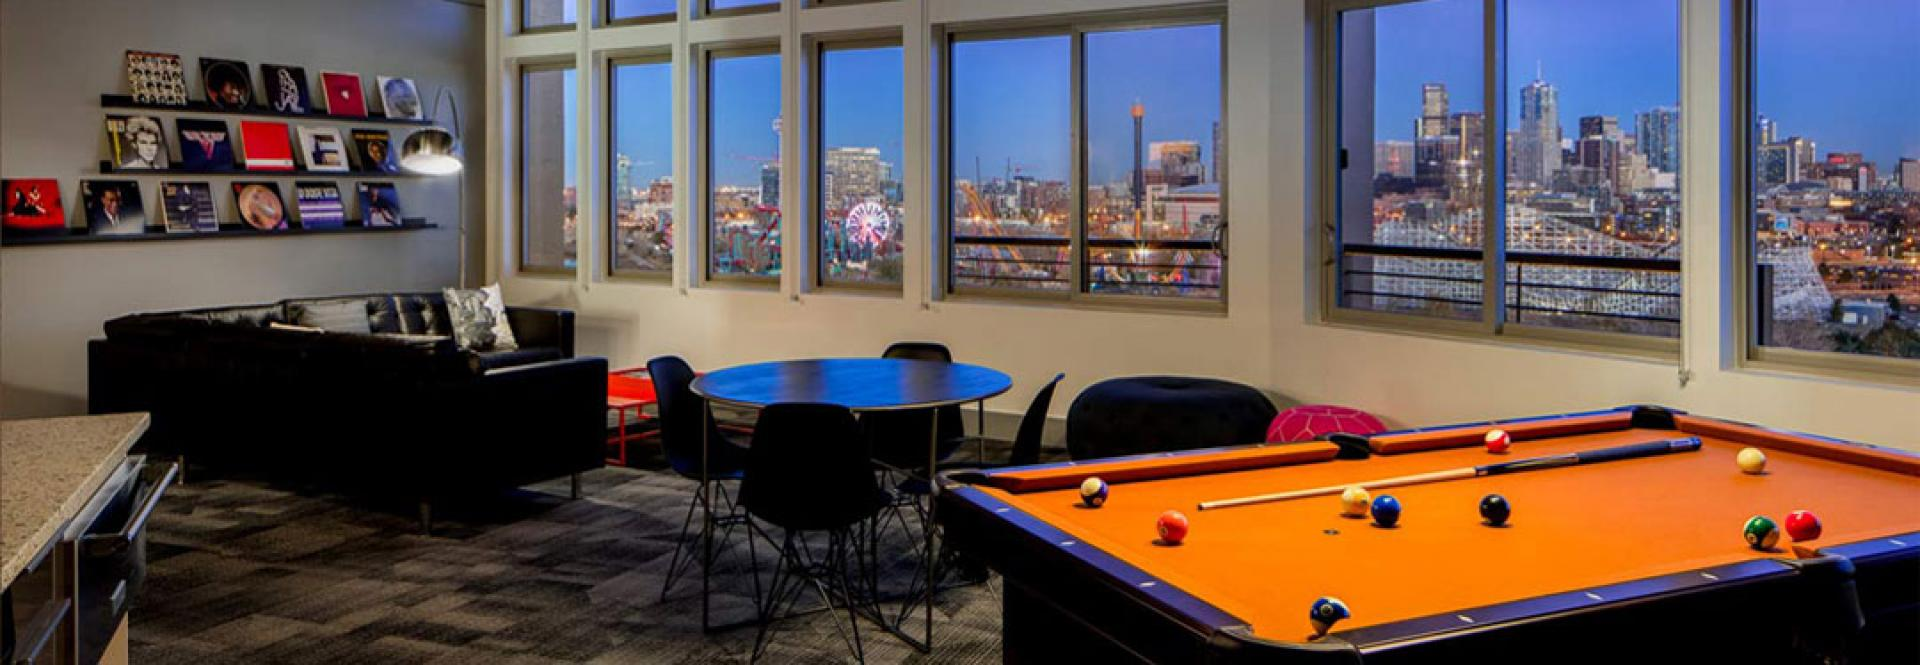 Penthouse Game Room at Turntable Studios